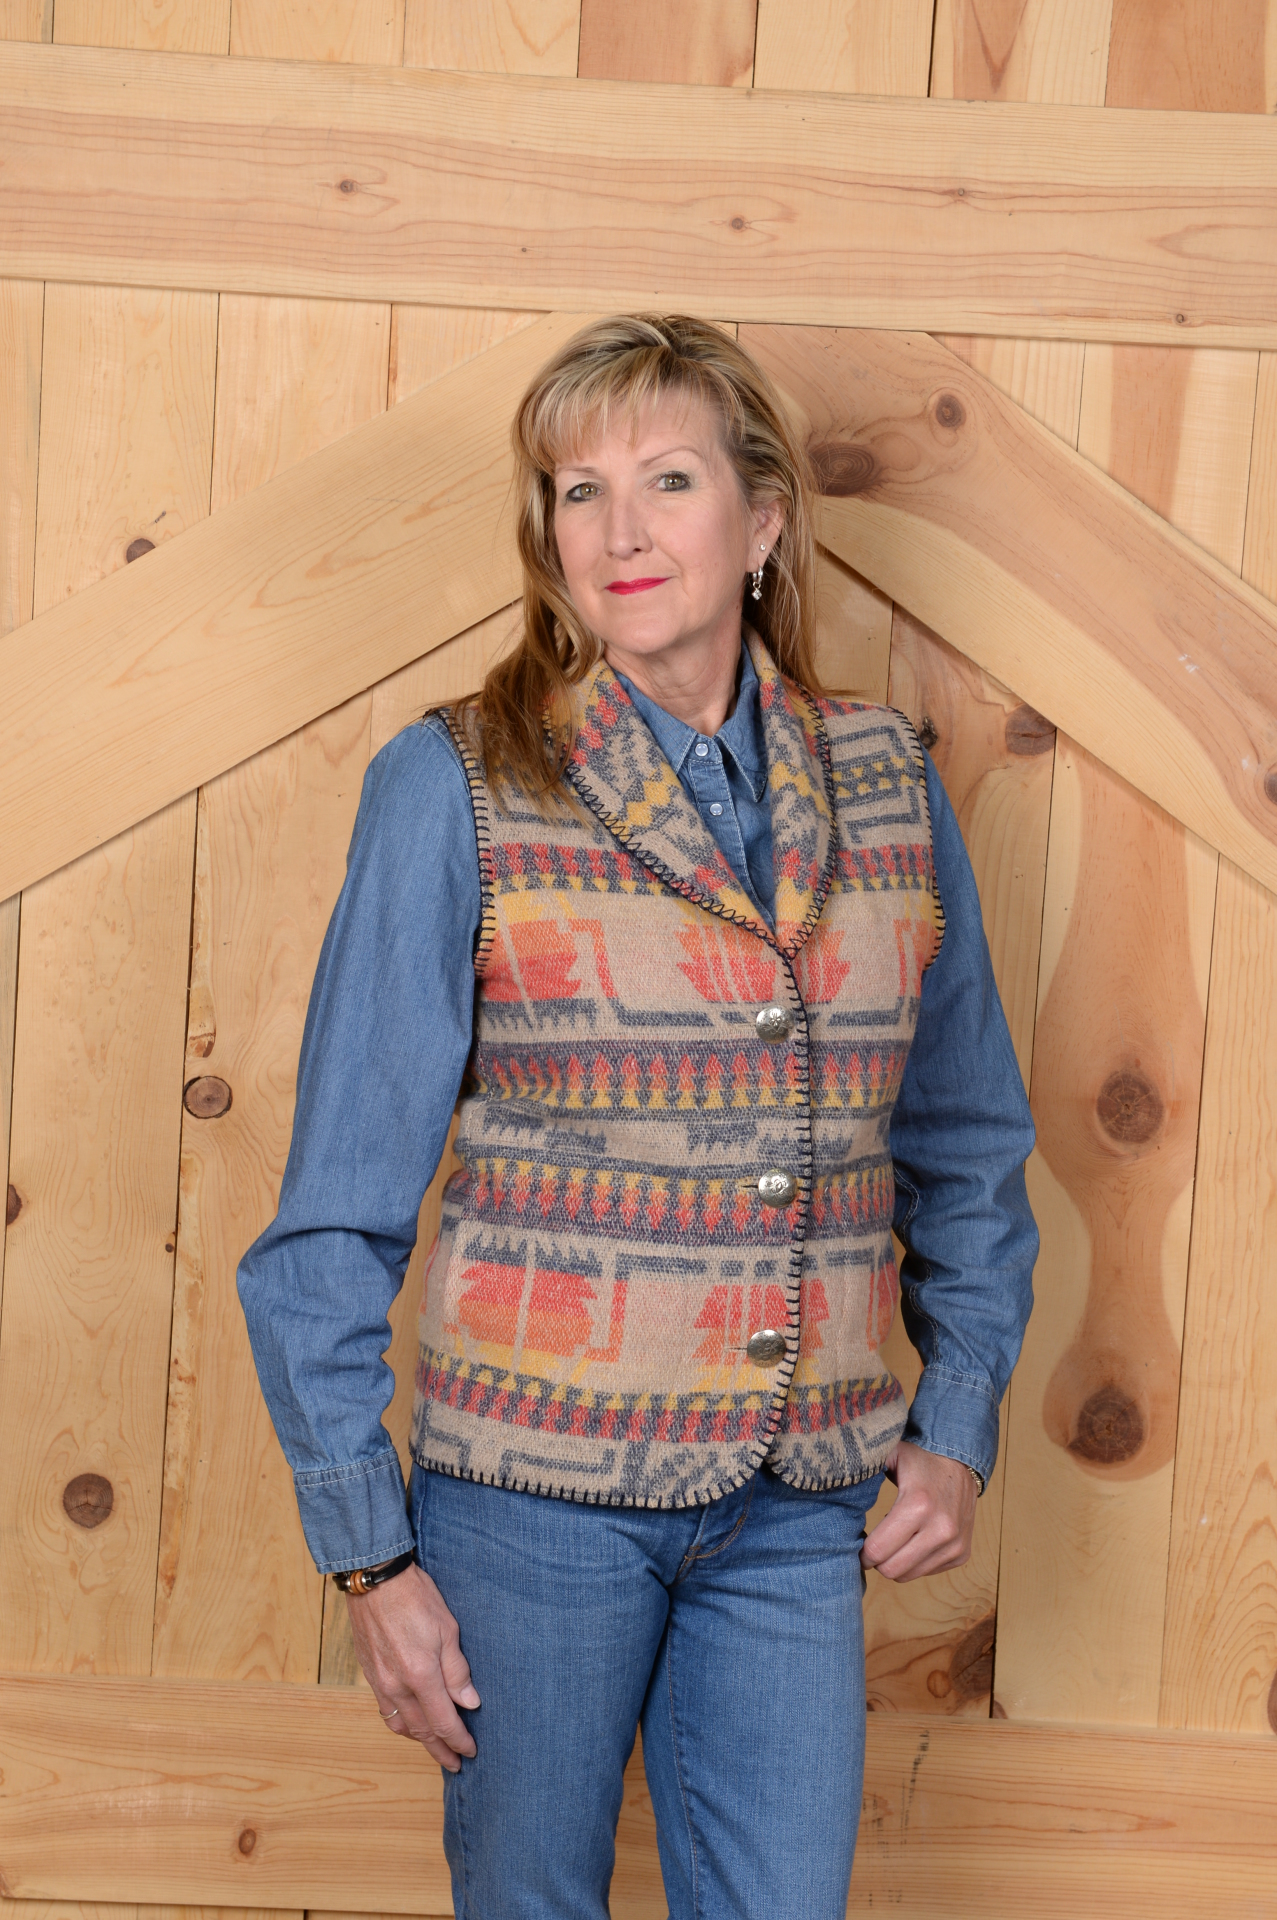 #130IC - INDIAN CHIEF SHAWL VEST - $99.95                    SALE $49.98 -- S-L-2X ONLY!